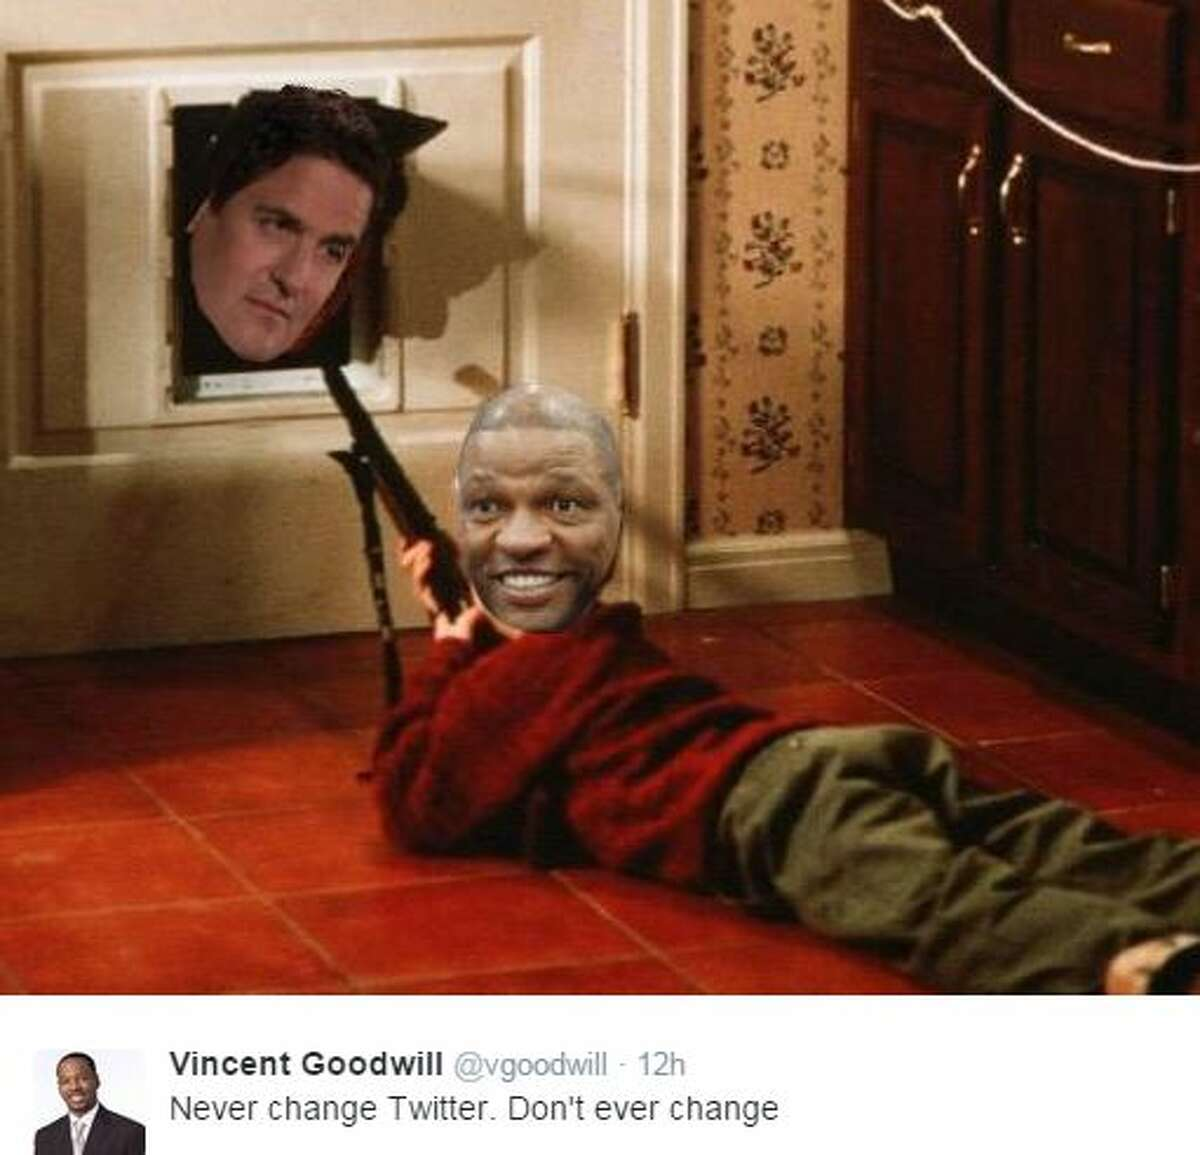 """""""Never change Twitter. Don't ever change"""" - Vincent Goodwill, @vgoodwill"""